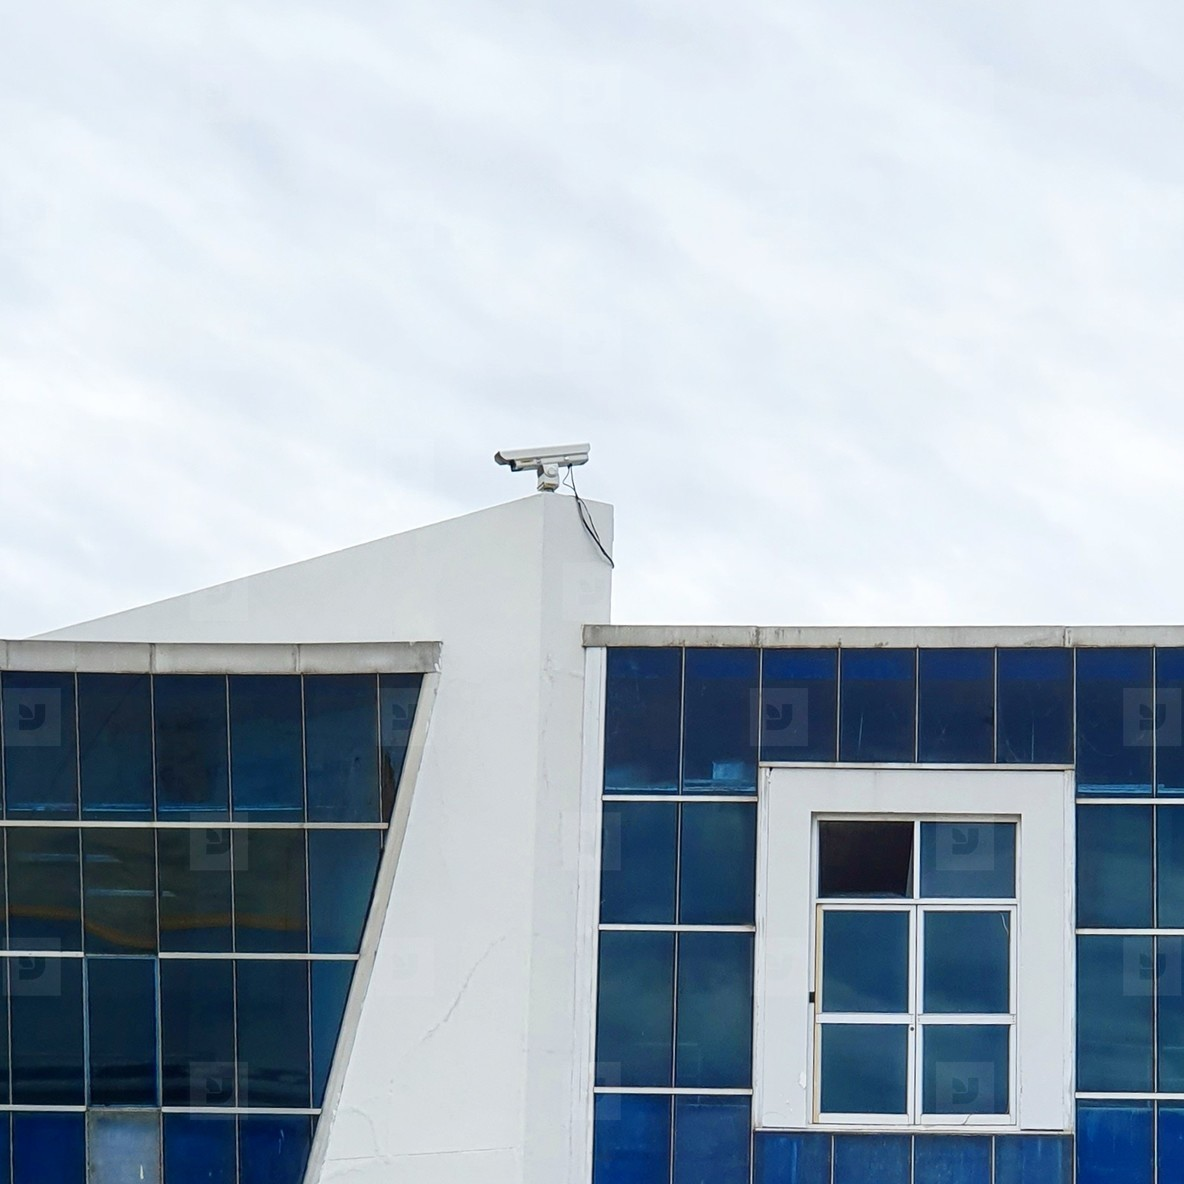 CCTV camera on top of building